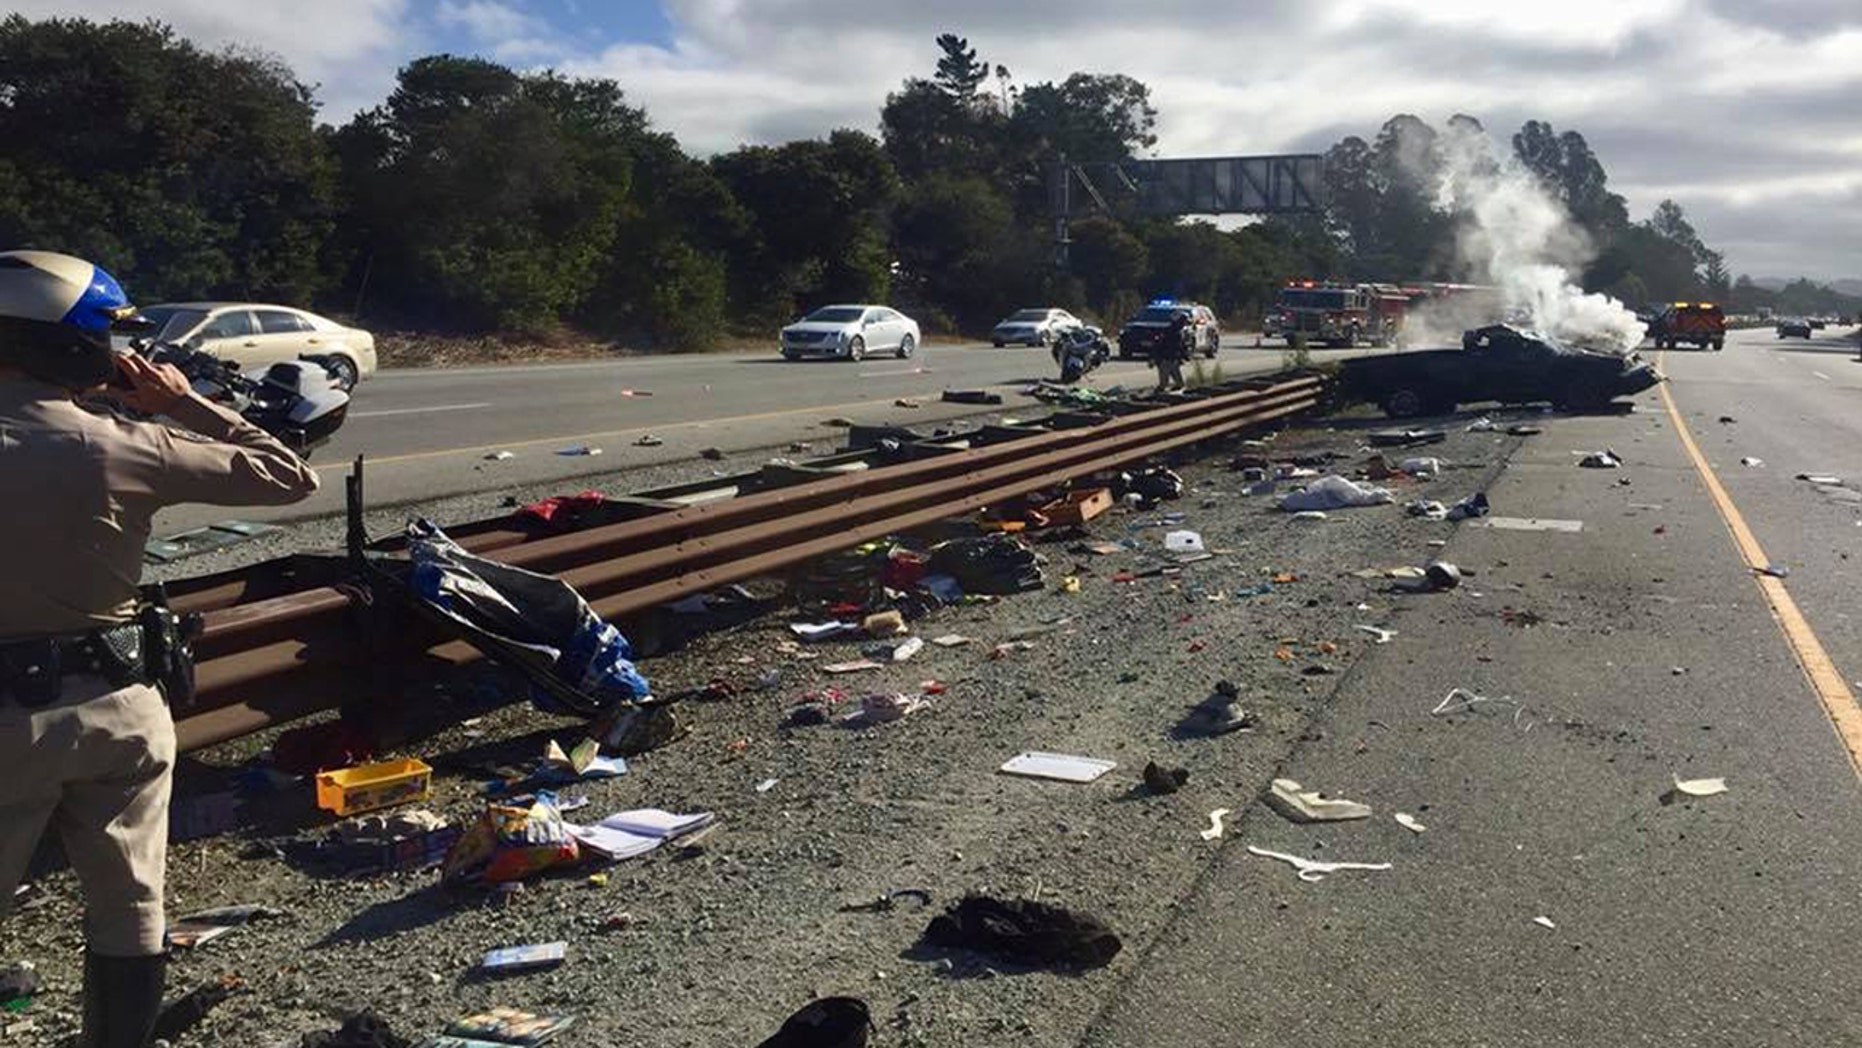 A boy, 5, was ejected from a truck that rolled over multiple times on a California highway on Tuesday, police said.